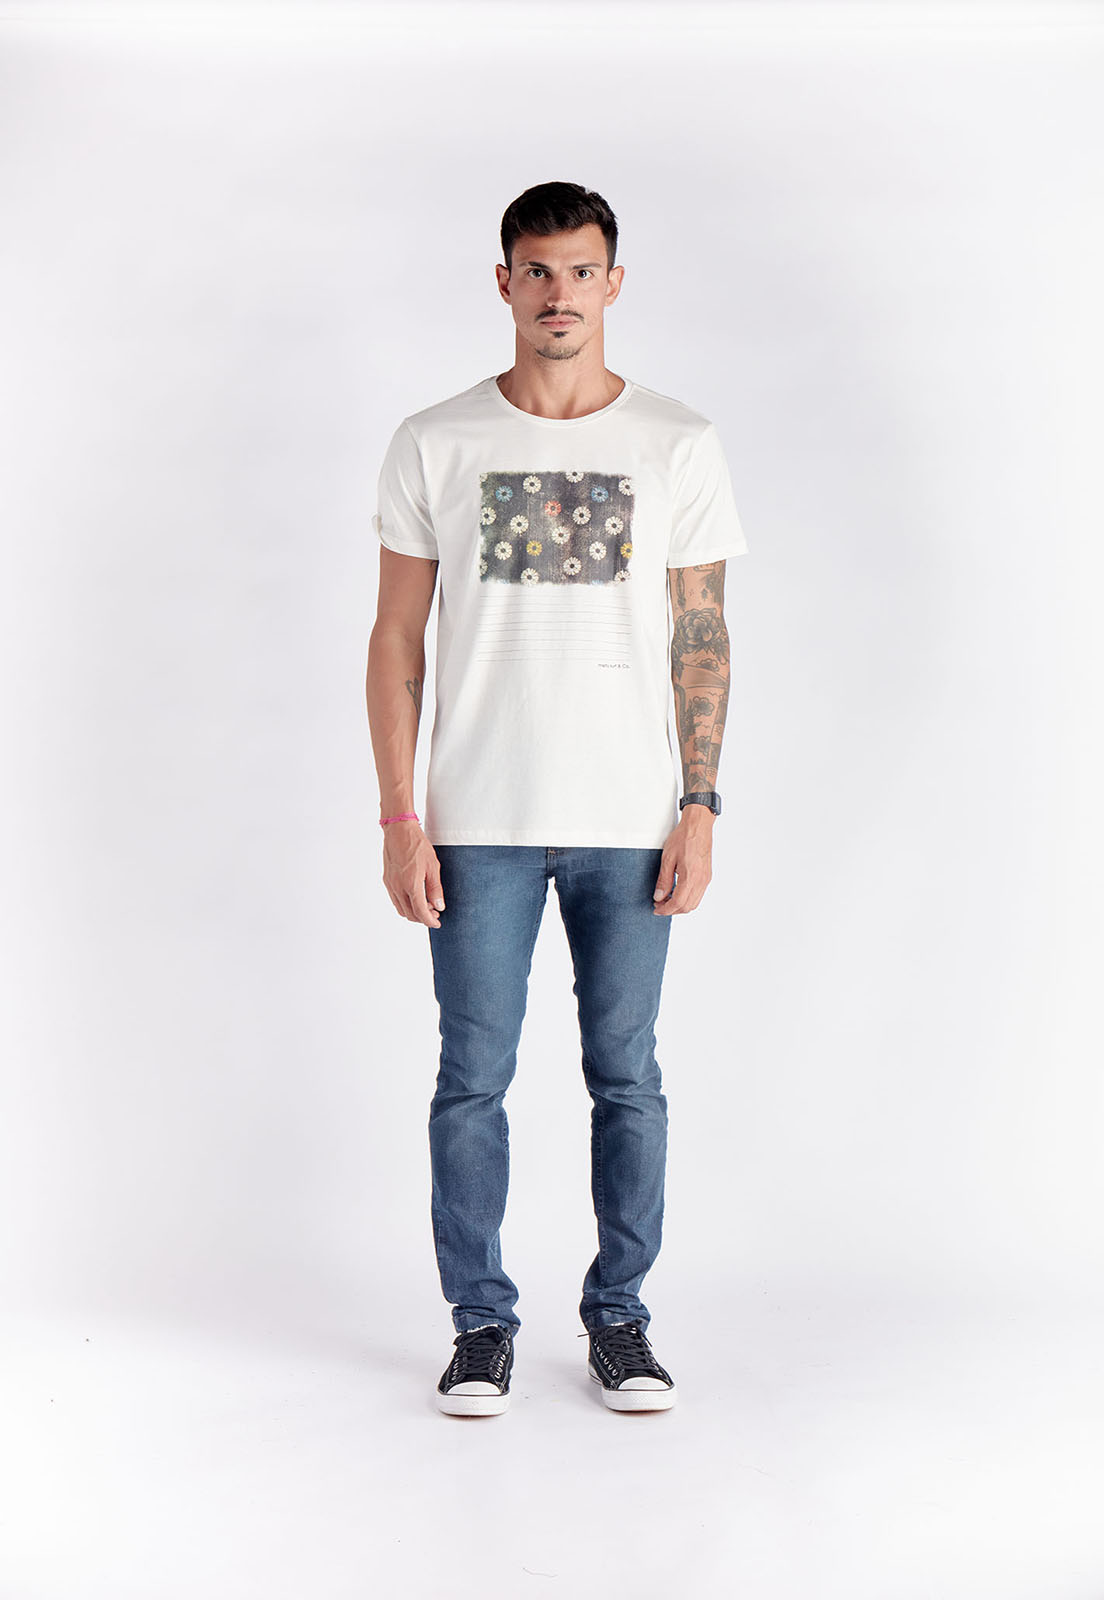 T-shirt  Fleurs Branco Melty  - melty surf & Co.